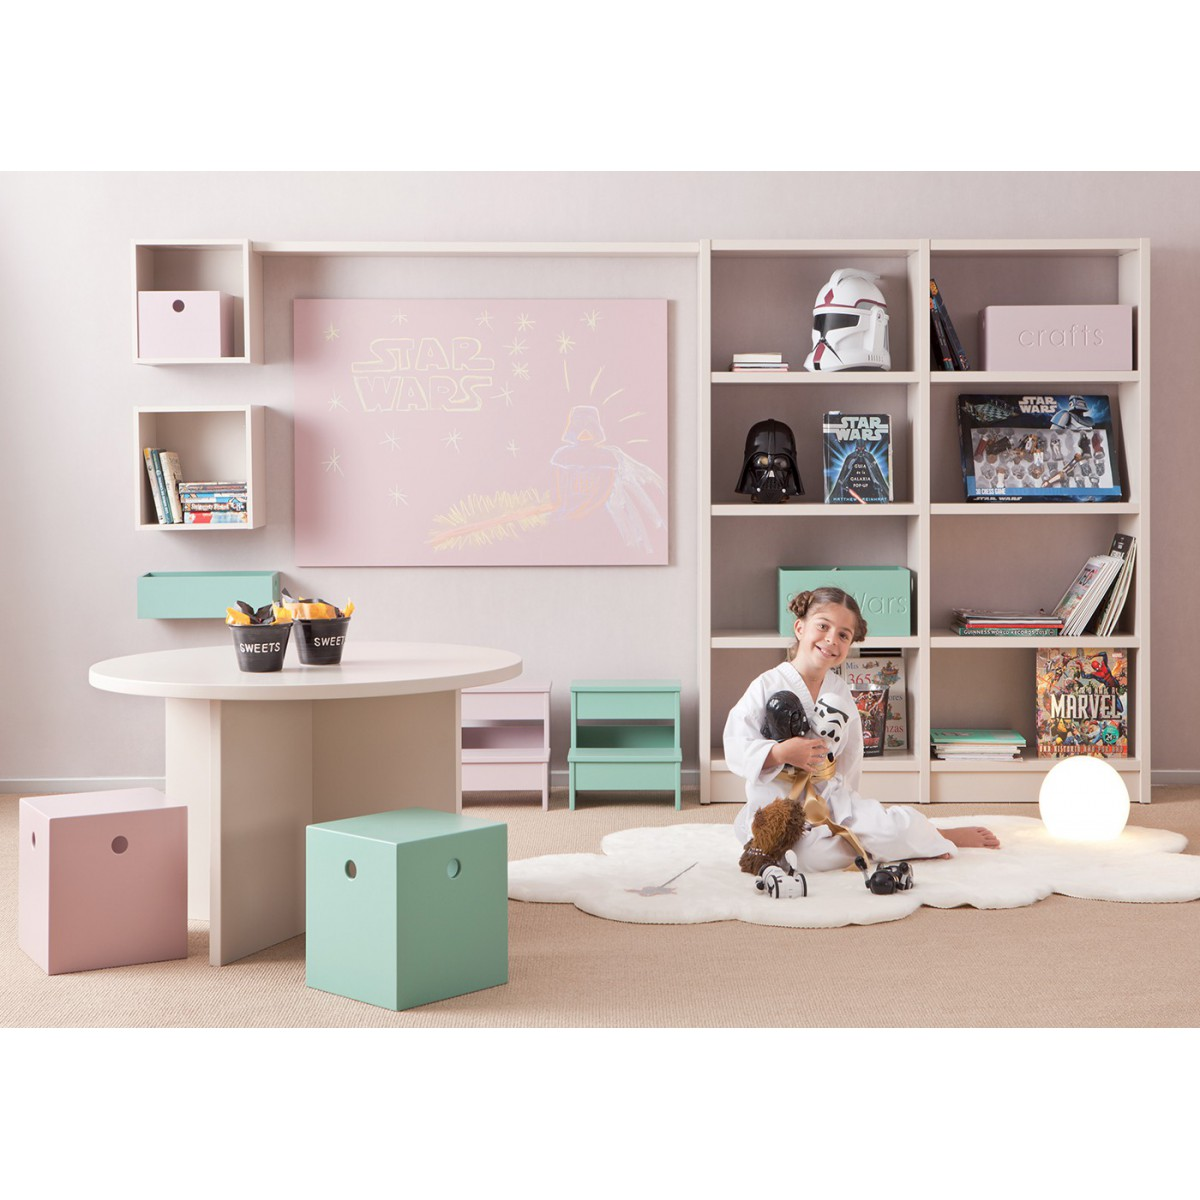 ranger chambre enfant perfect s with ranger chambre enfant le rangement chambre bb quelques. Black Bedroom Furniture Sets. Home Design Ideas